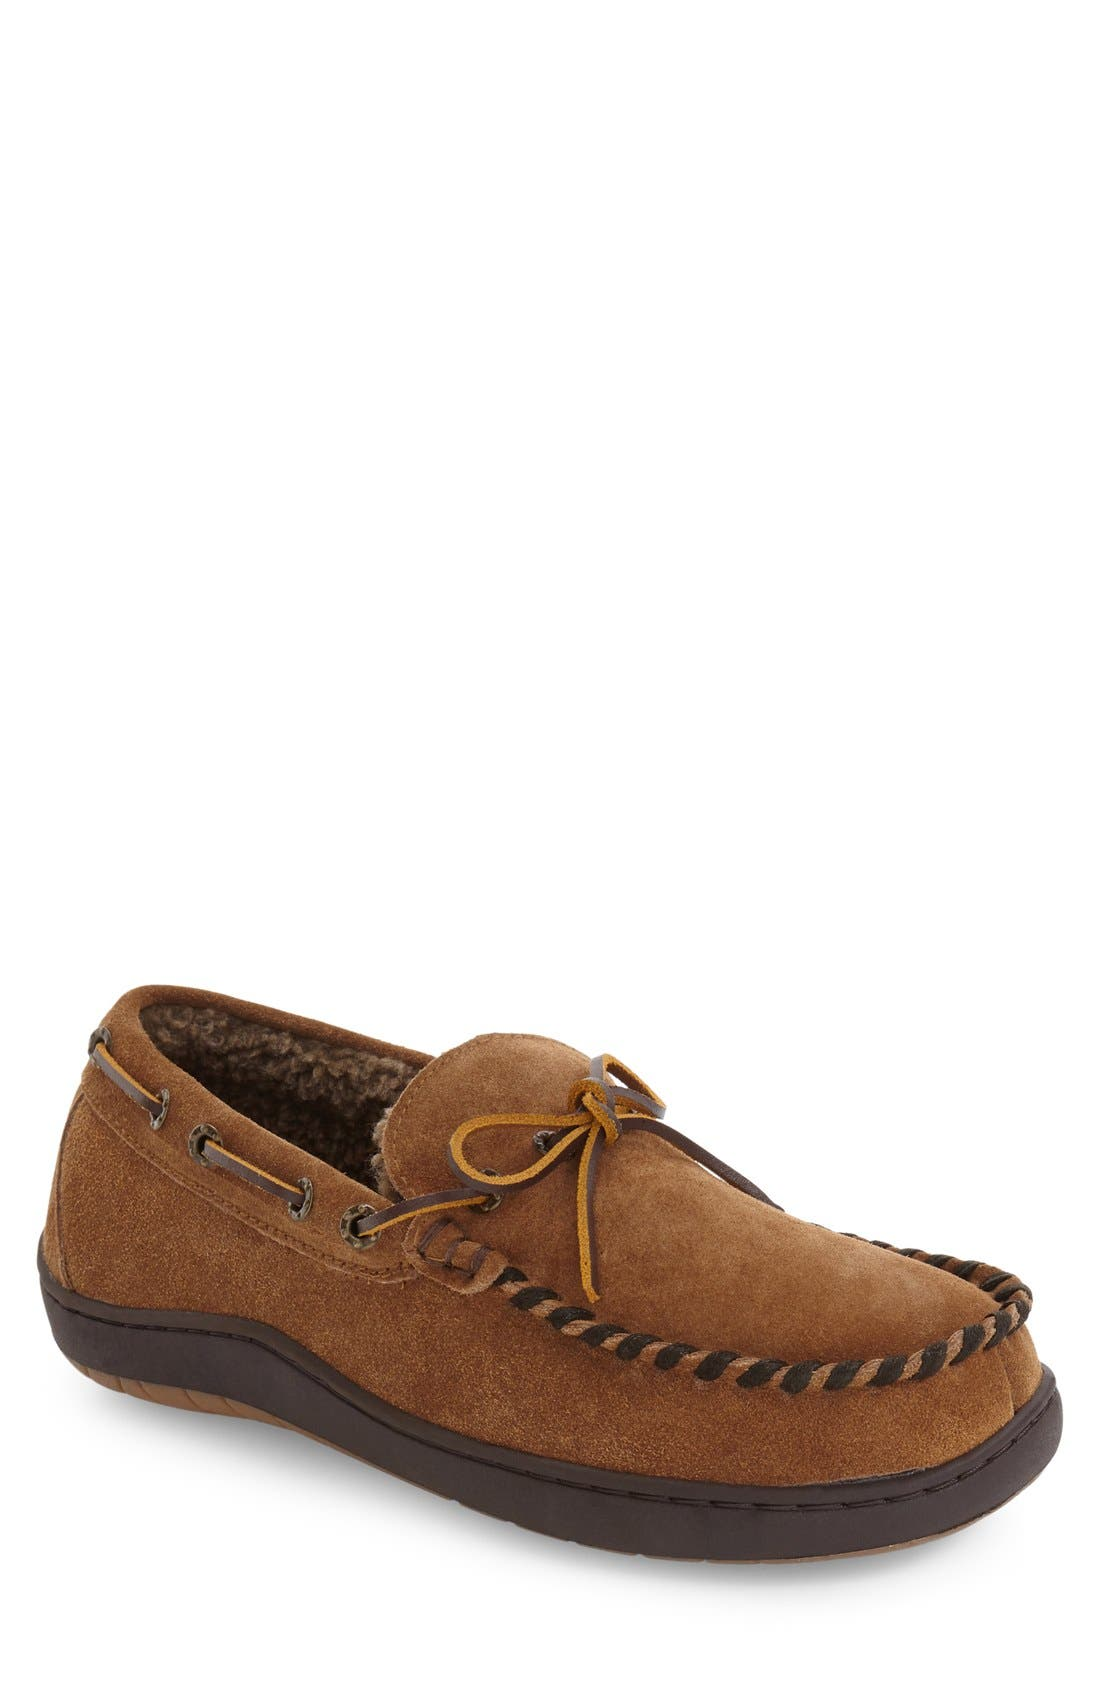 Therman Slipper,                         Main,                         color, CHESTNUT